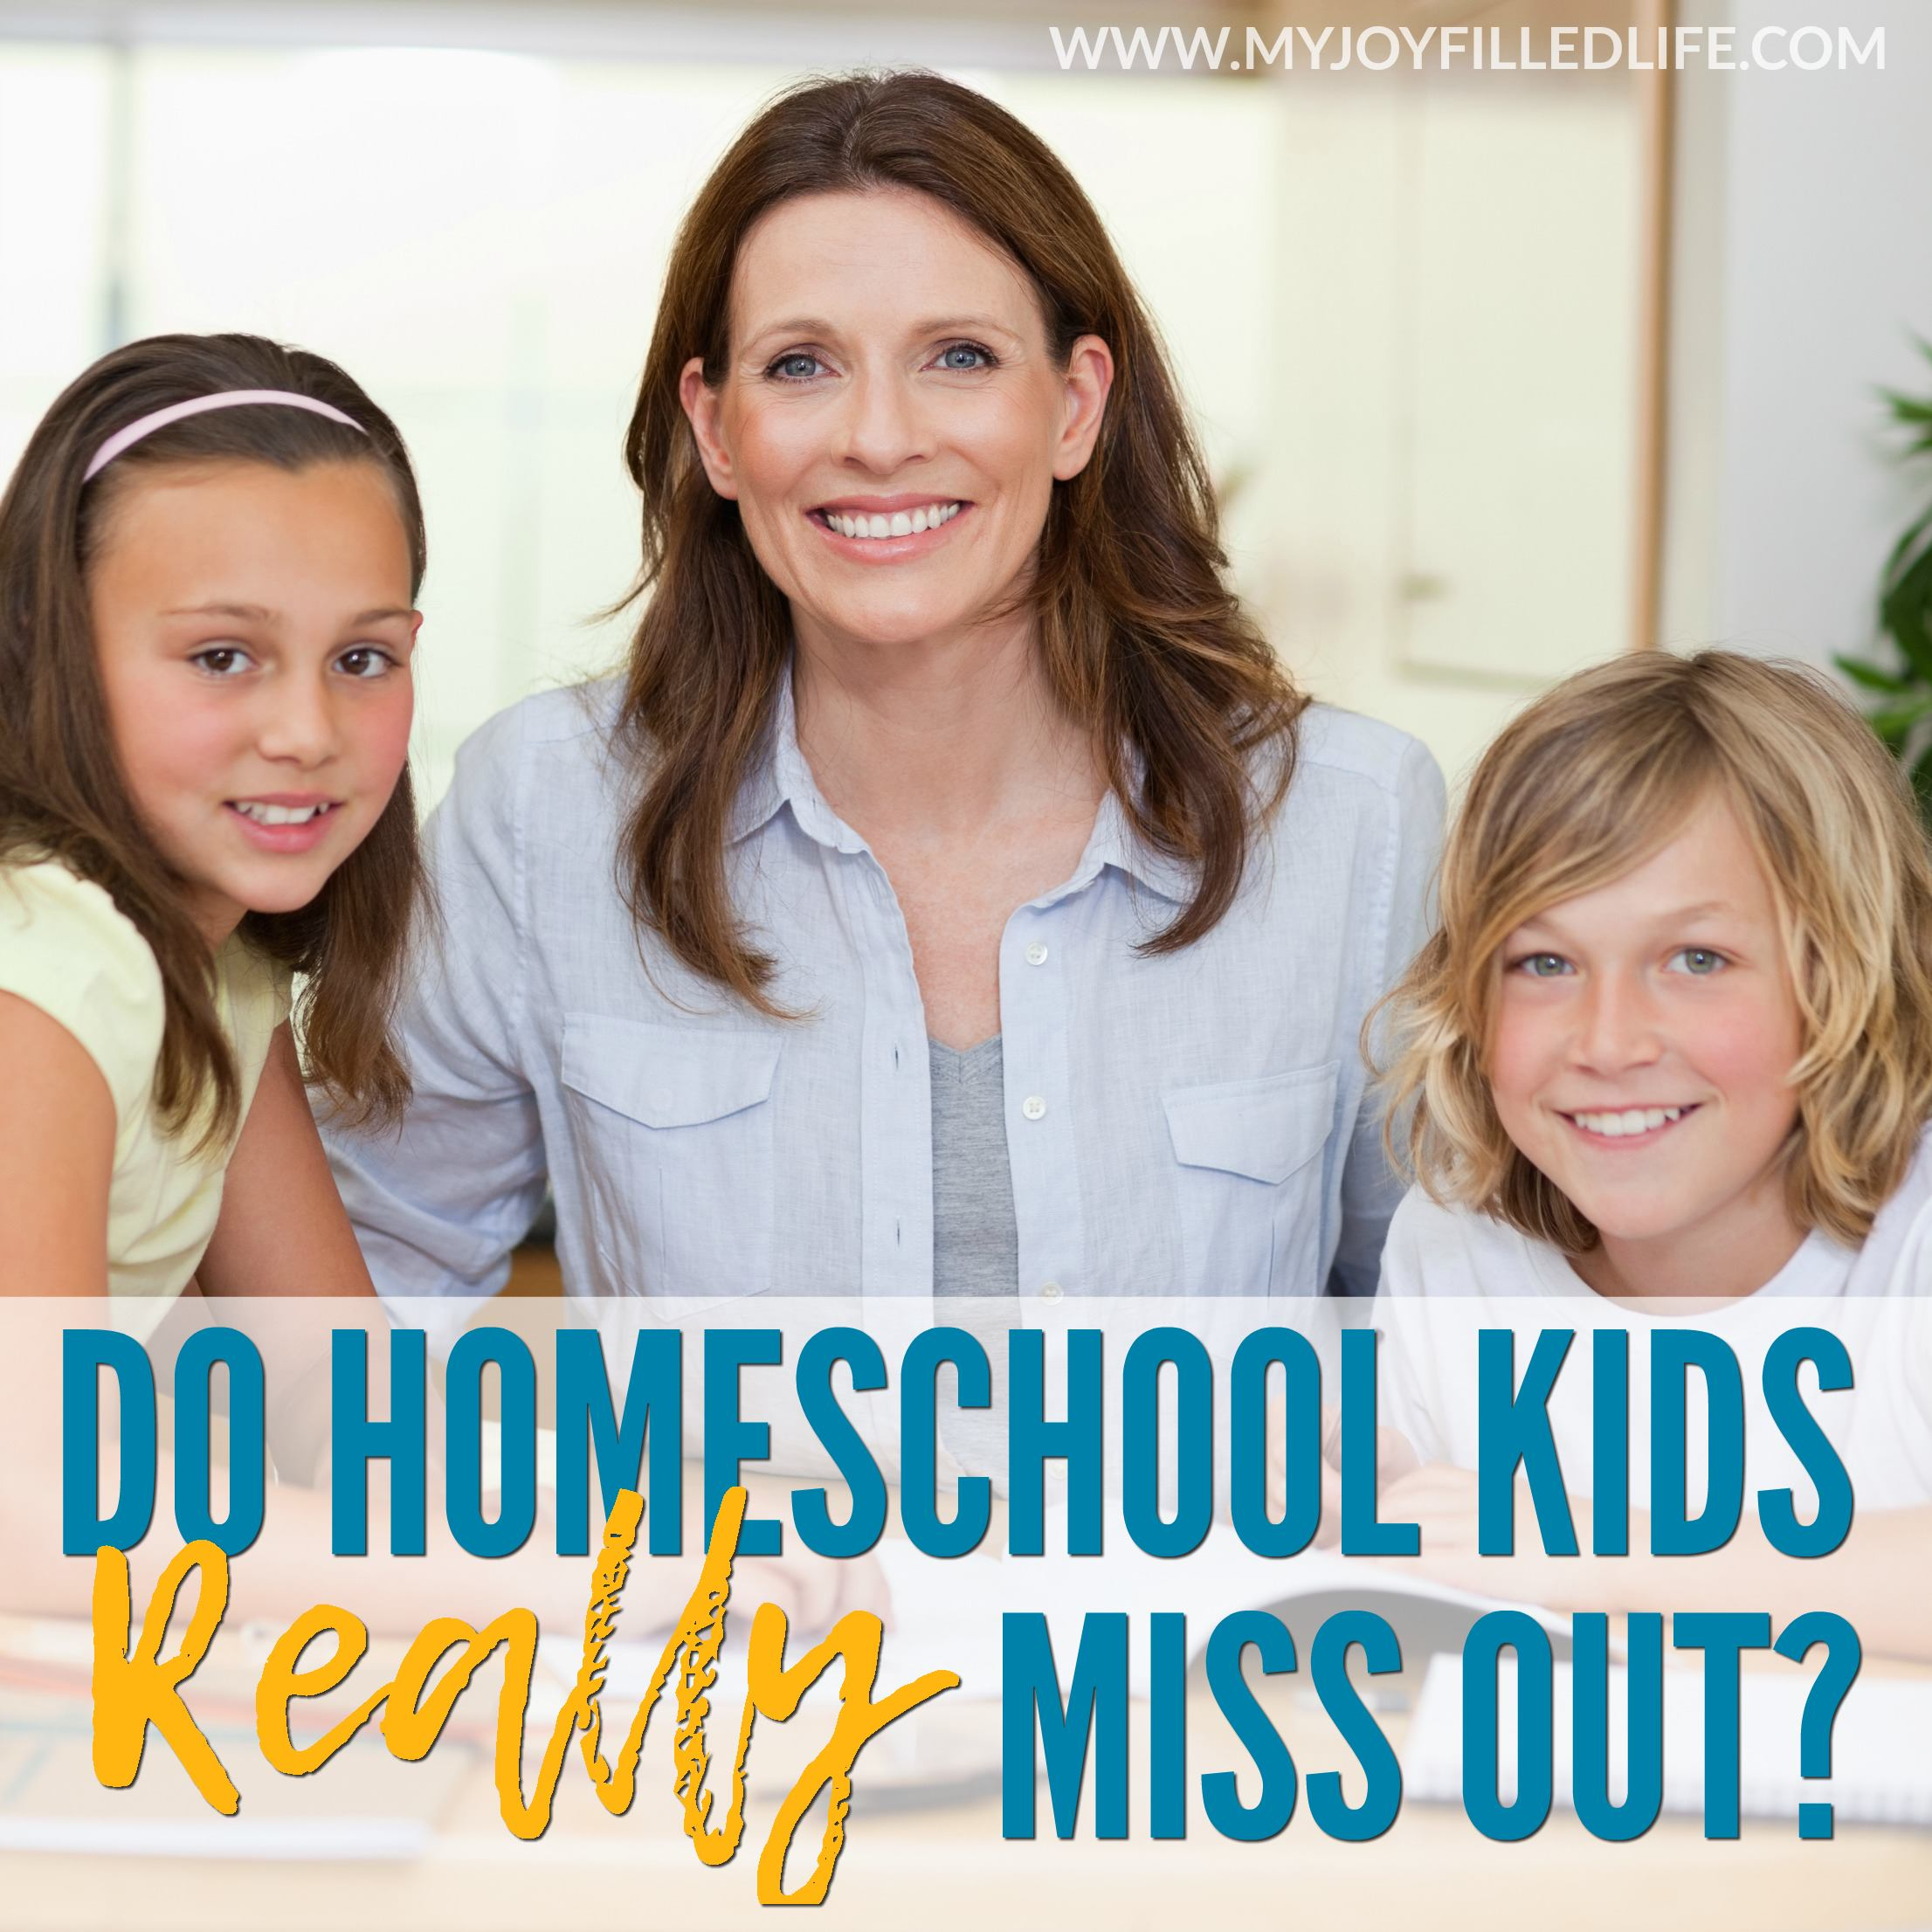 Do Homeschool Kids Really Miss Out?